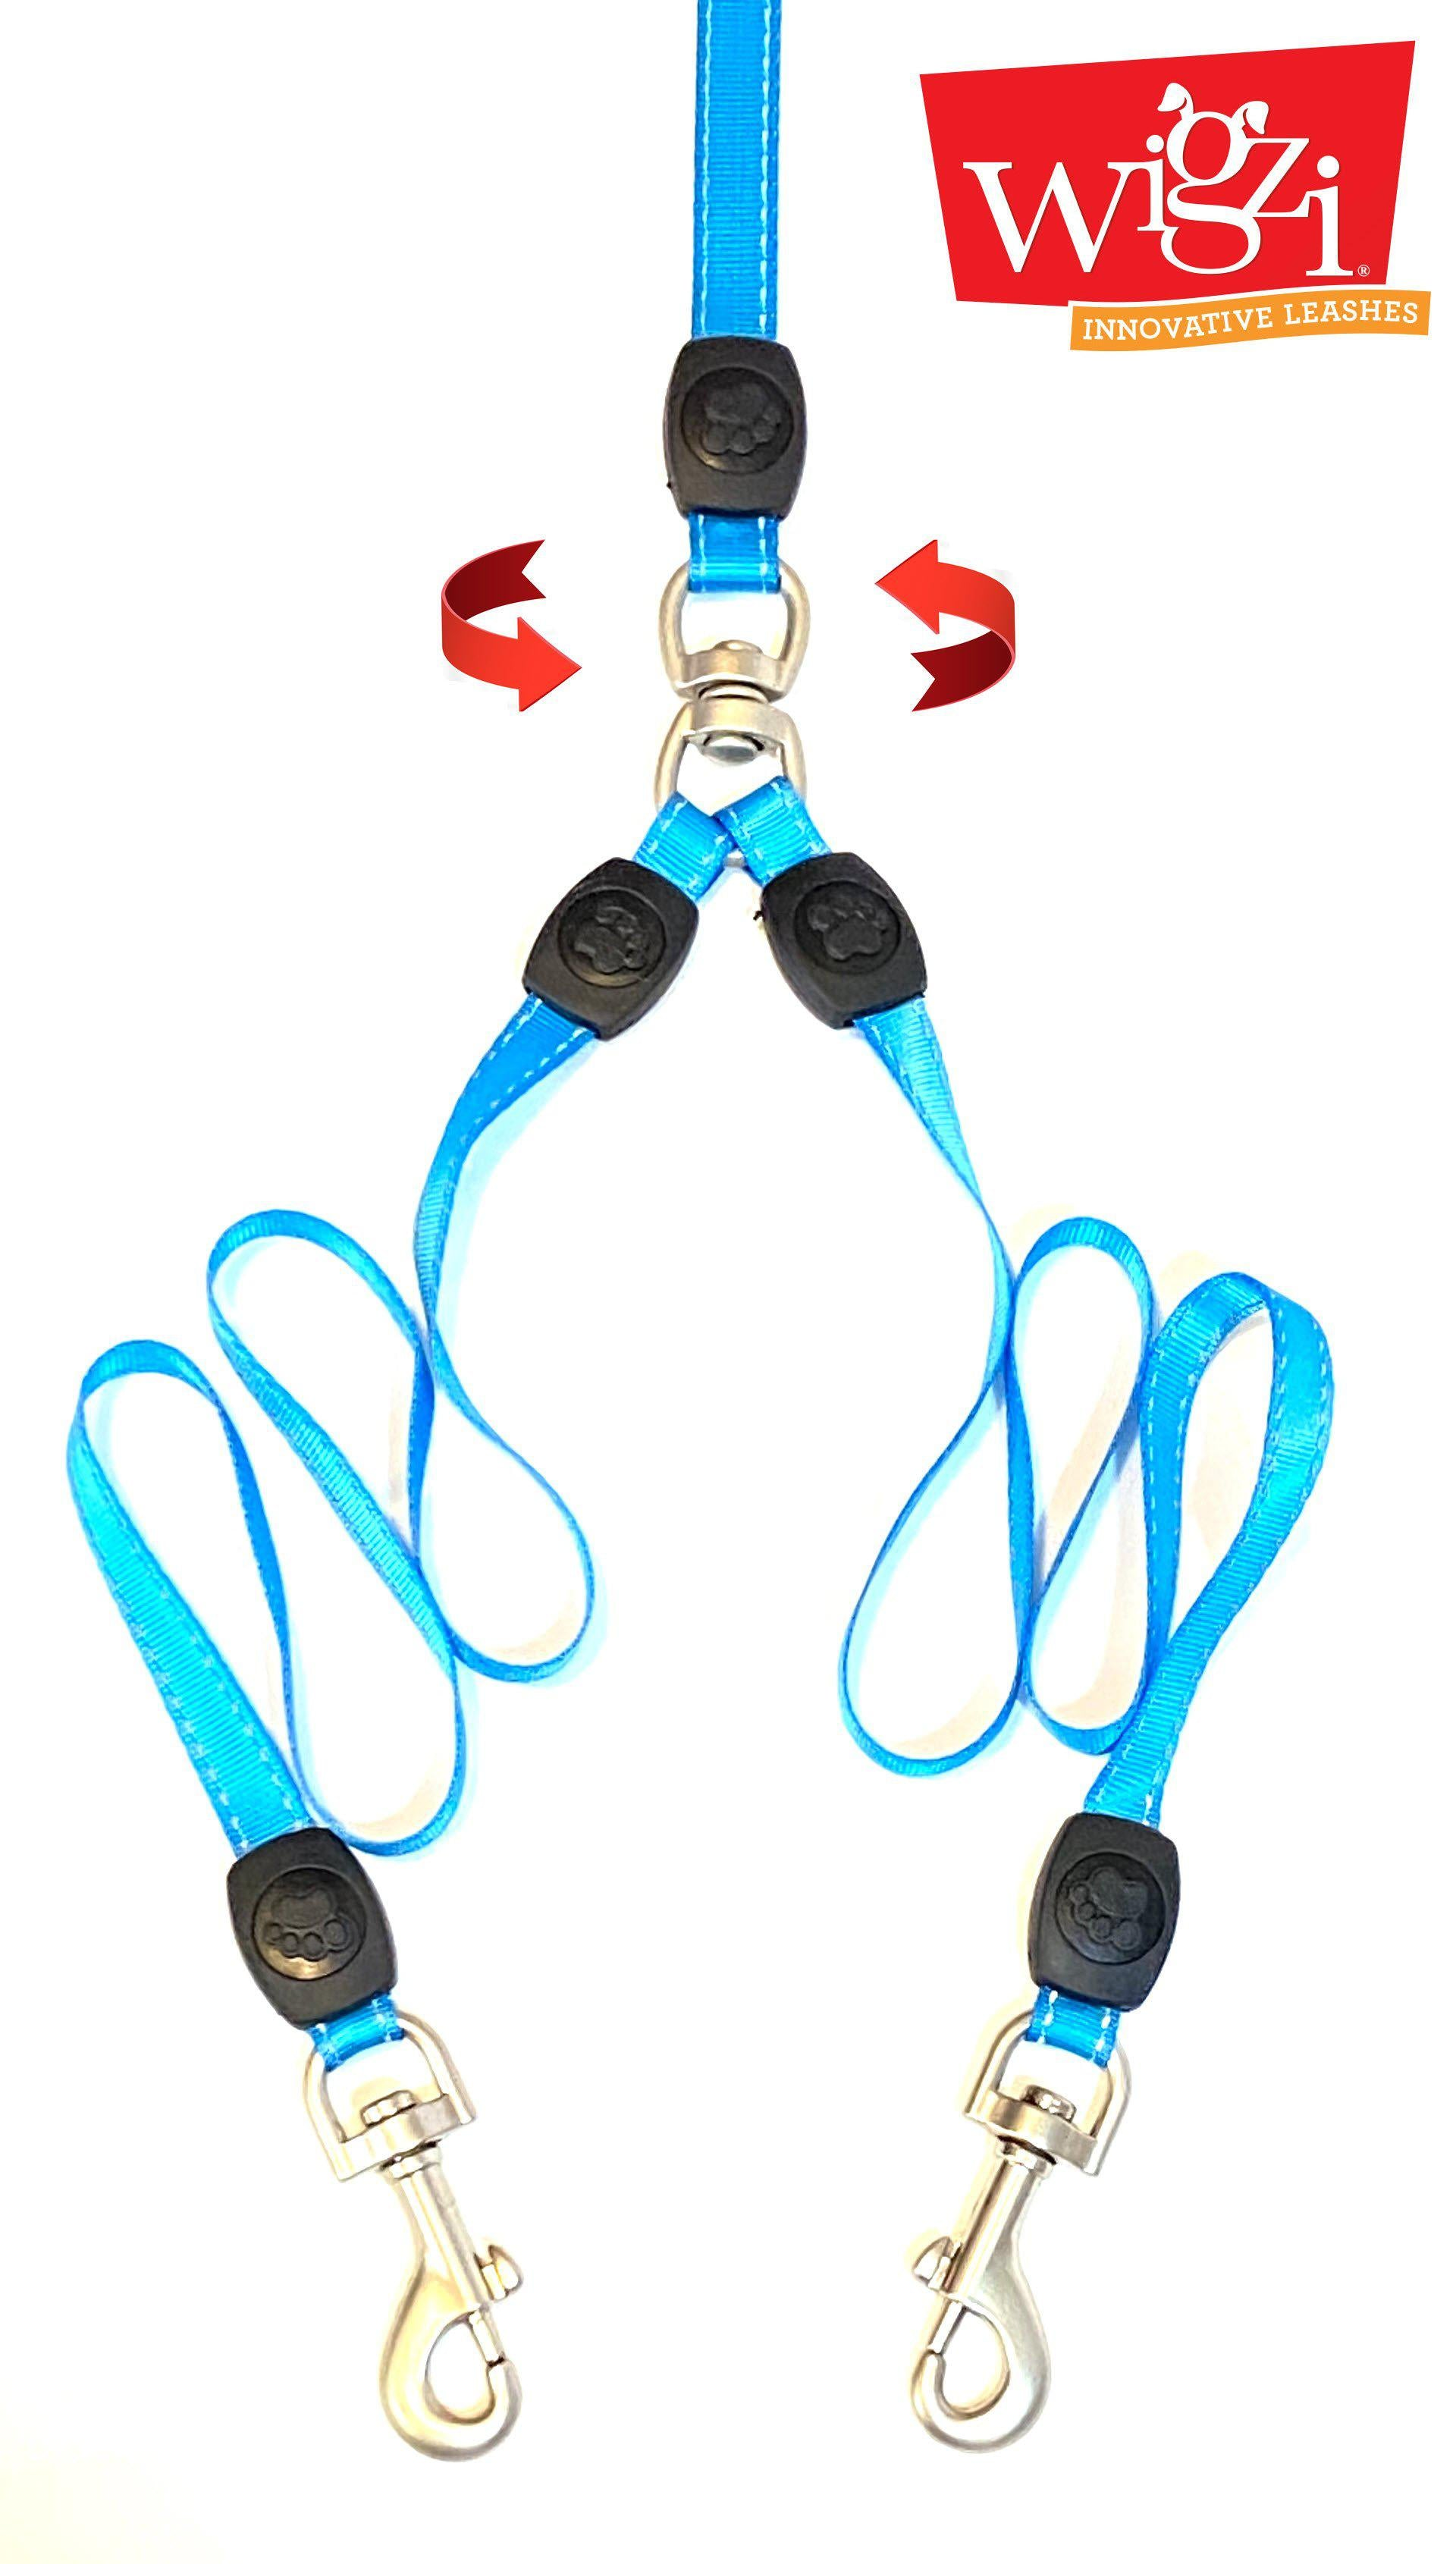 Double Dog Leash Coupler with Gel Handle spins 360 degrees